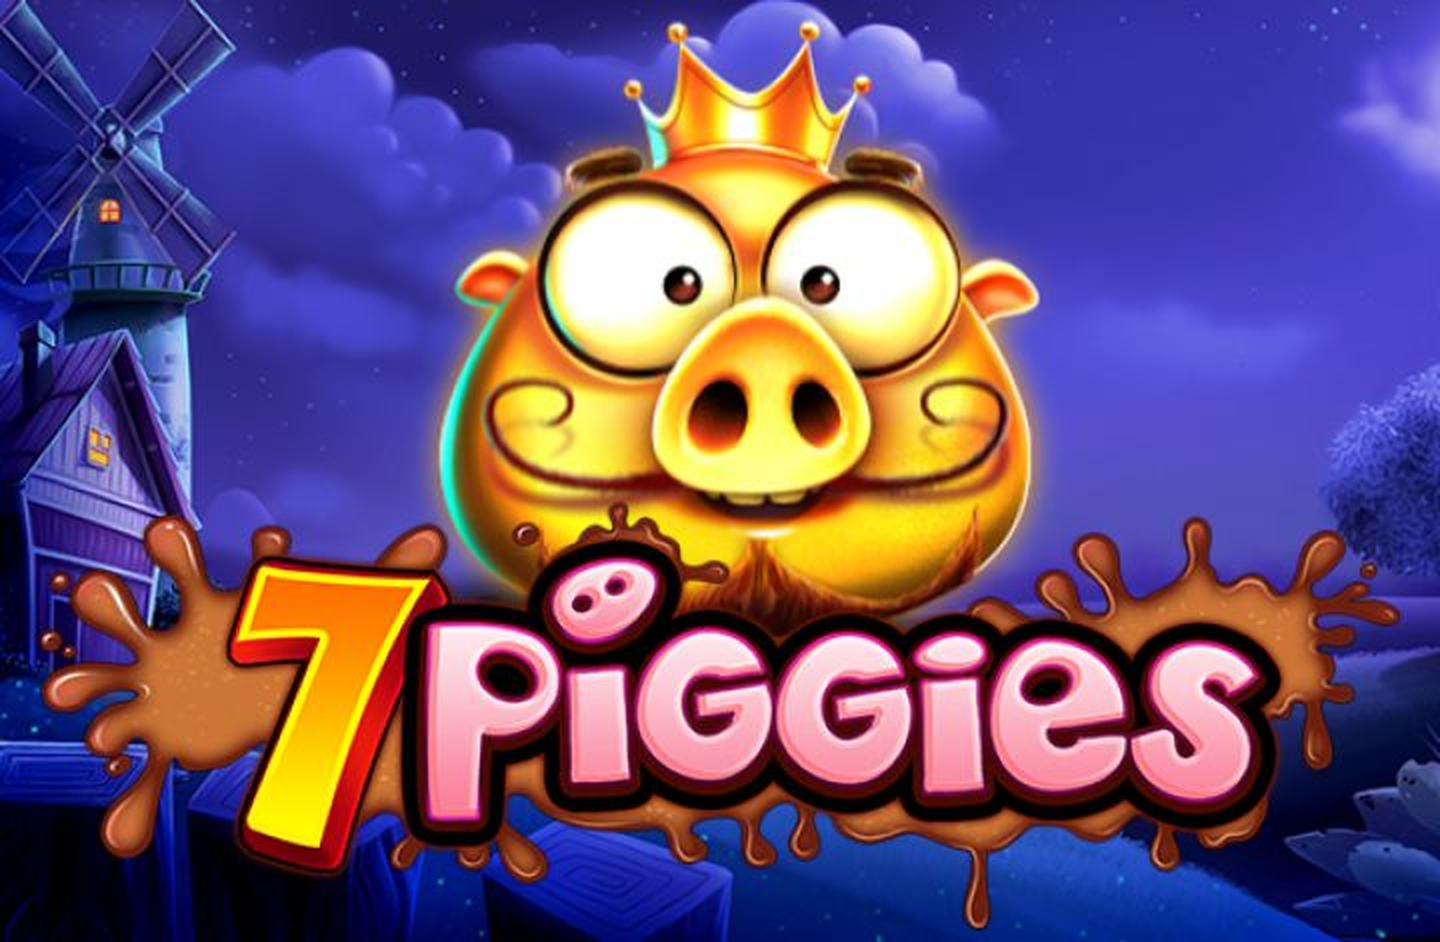 The 7 Piggies Online Slot Demo Game by Pragmatic Play